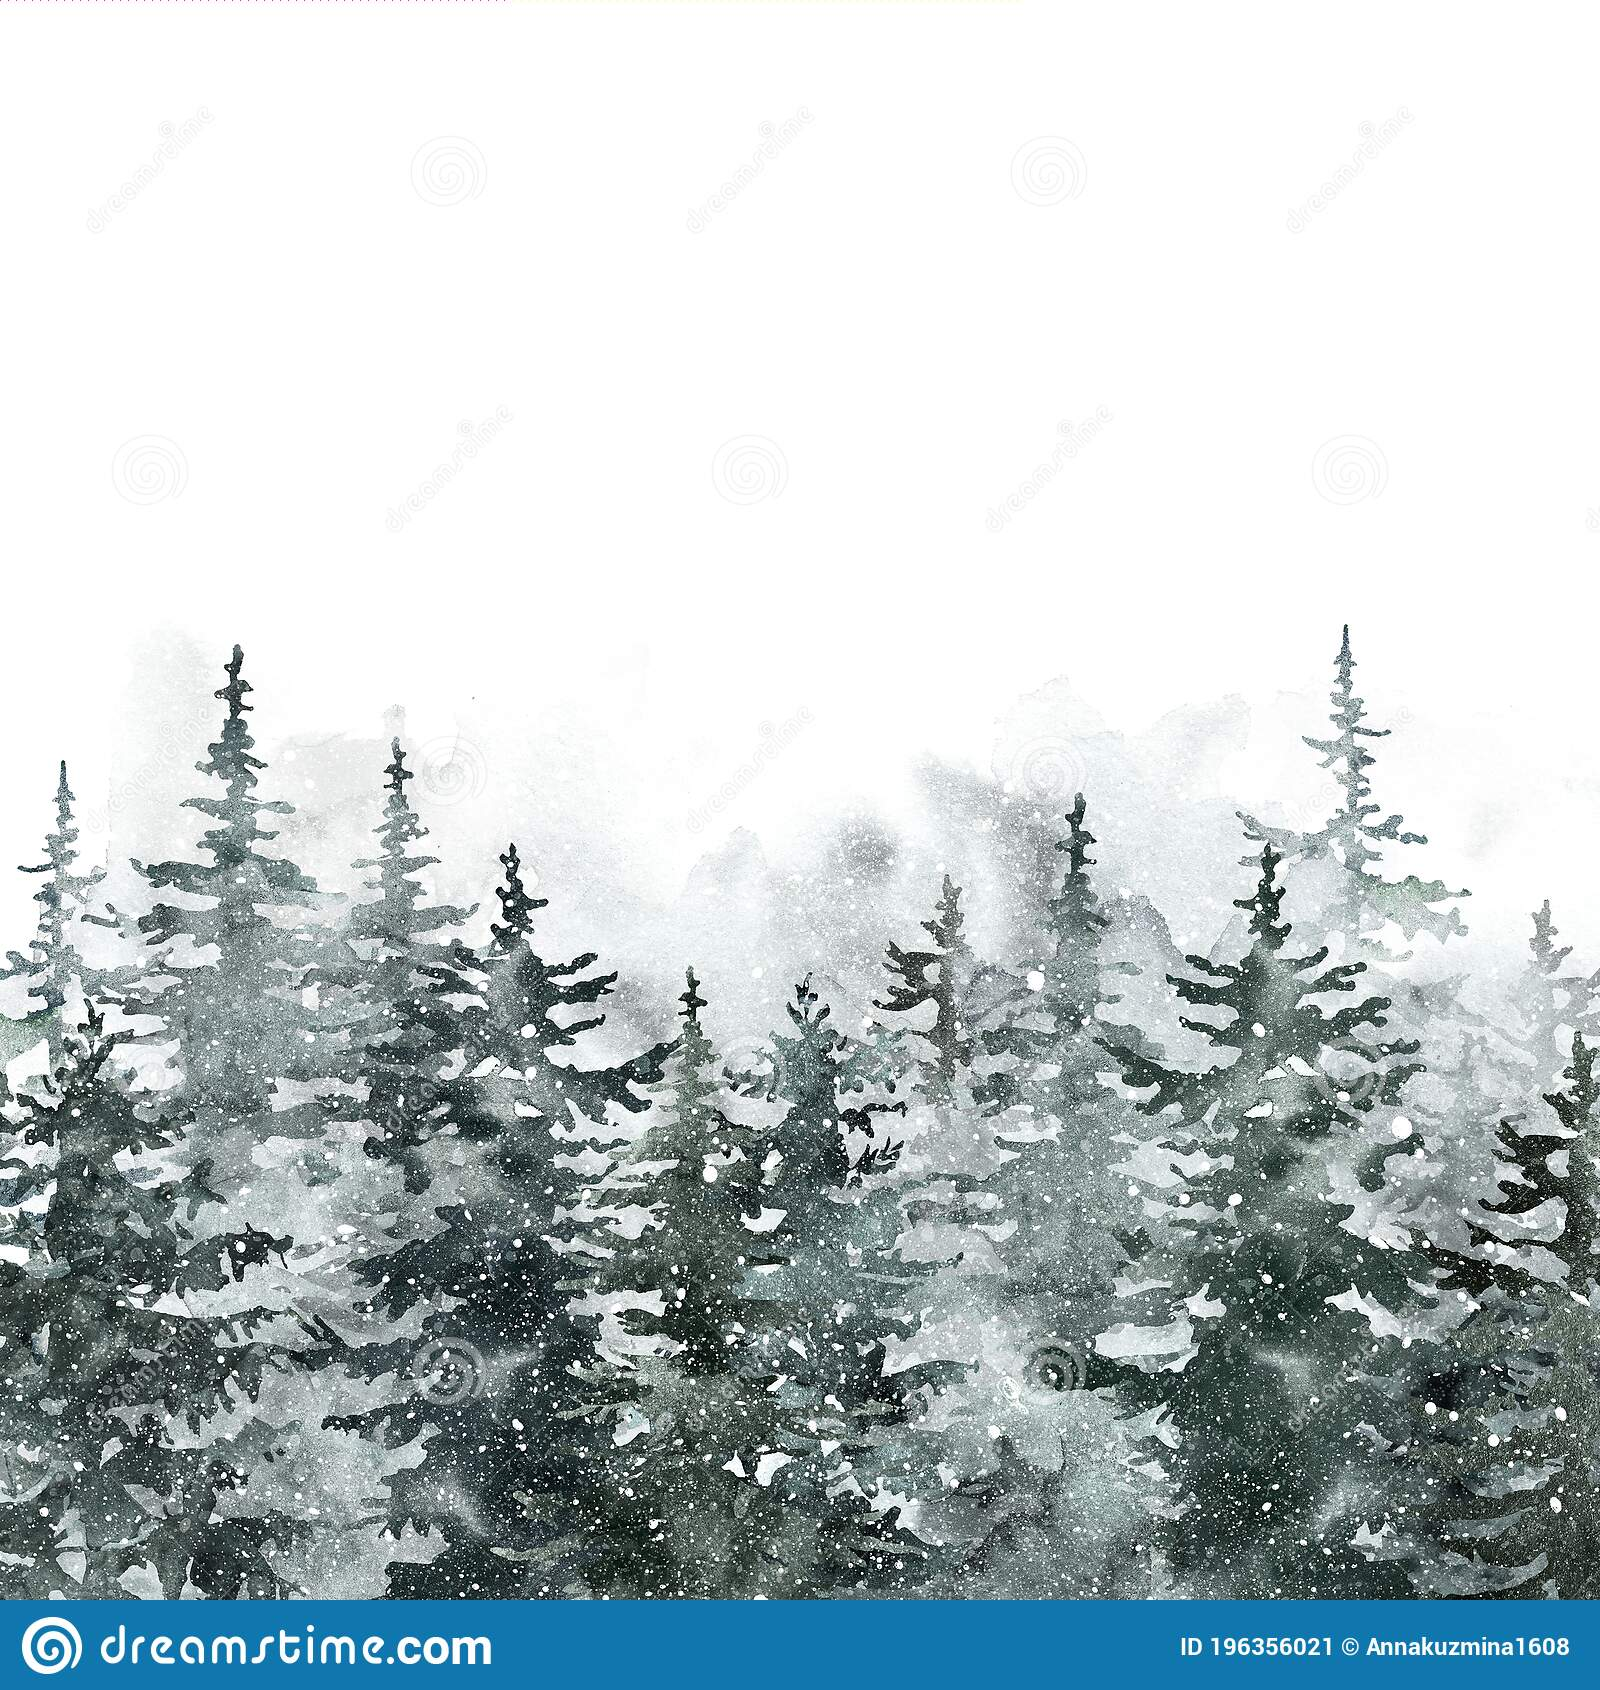 Winter Pine Tree Forest Watercolor Spruce Trees Landscape Illustration Snowy Foggy Woods Christmas Background Stock Image Image Of Season Cold 196356021